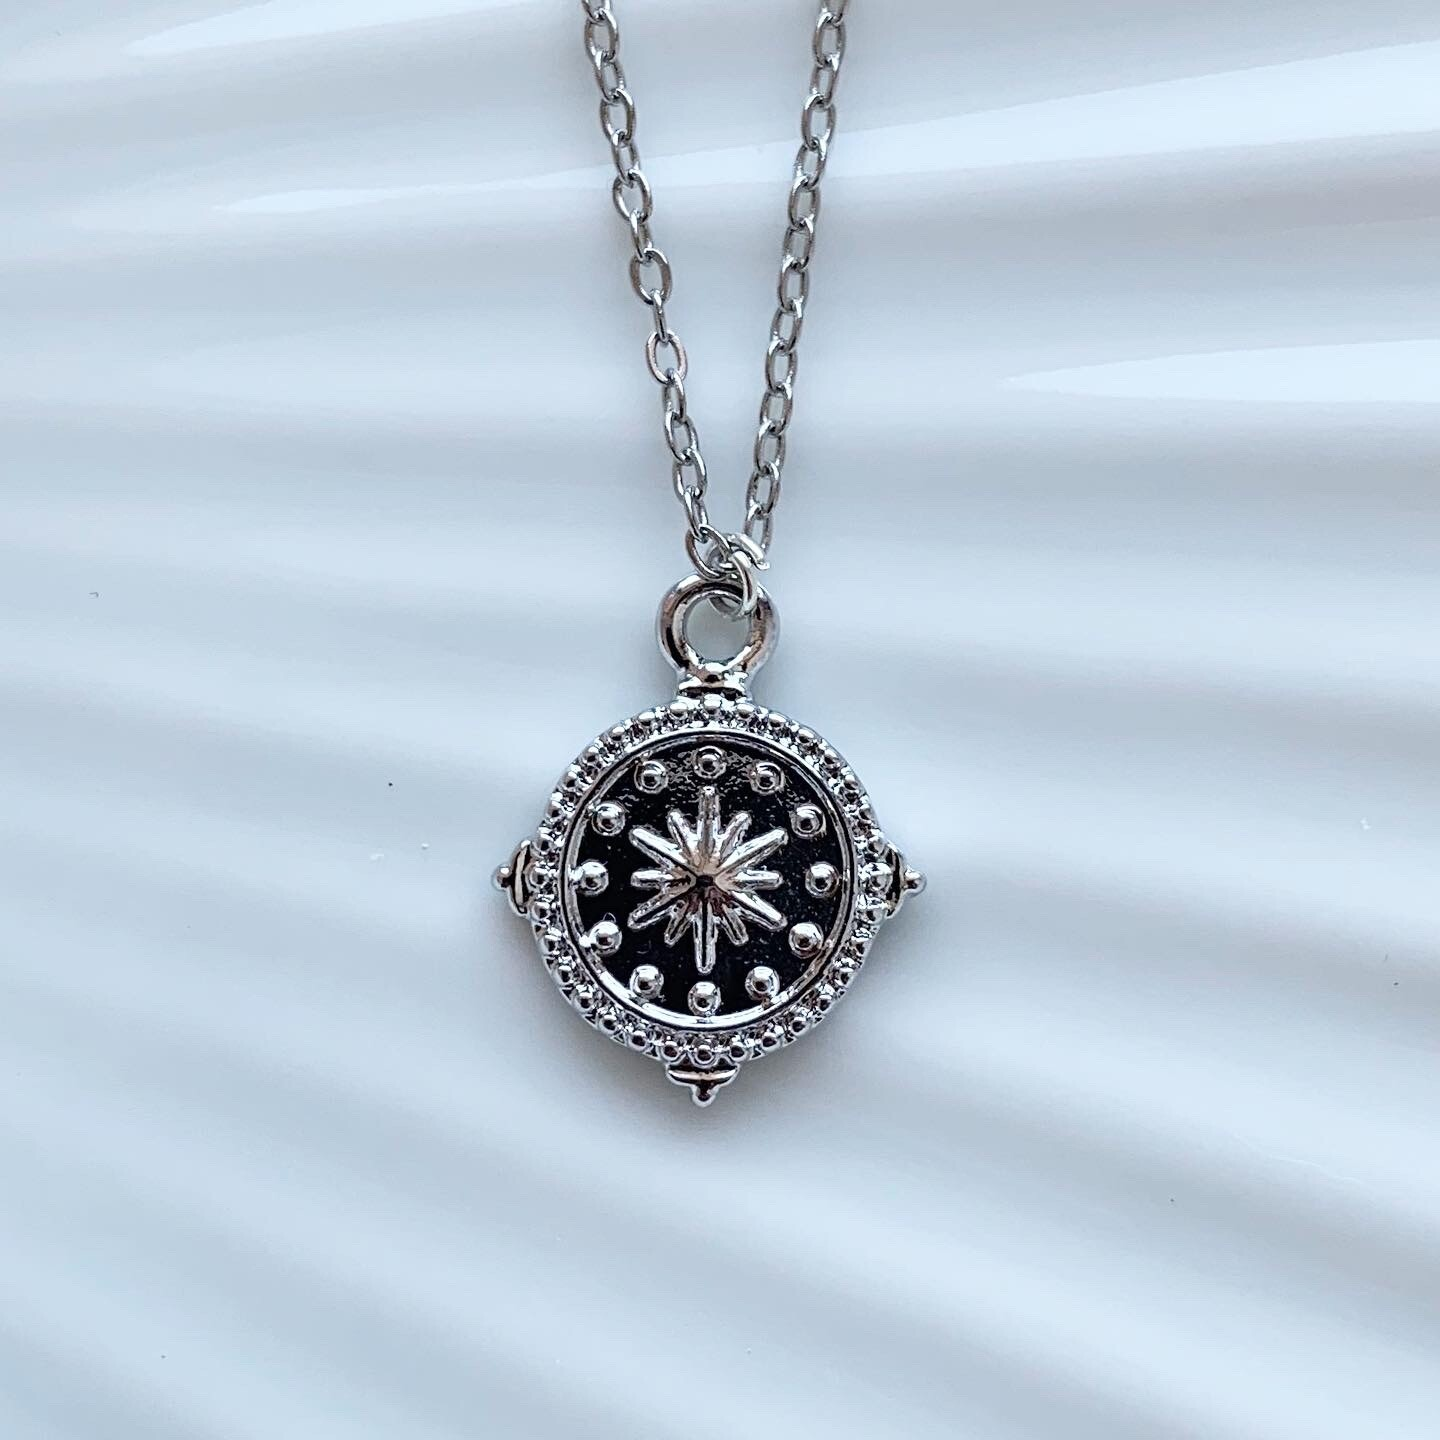 Star coin ketting zilver